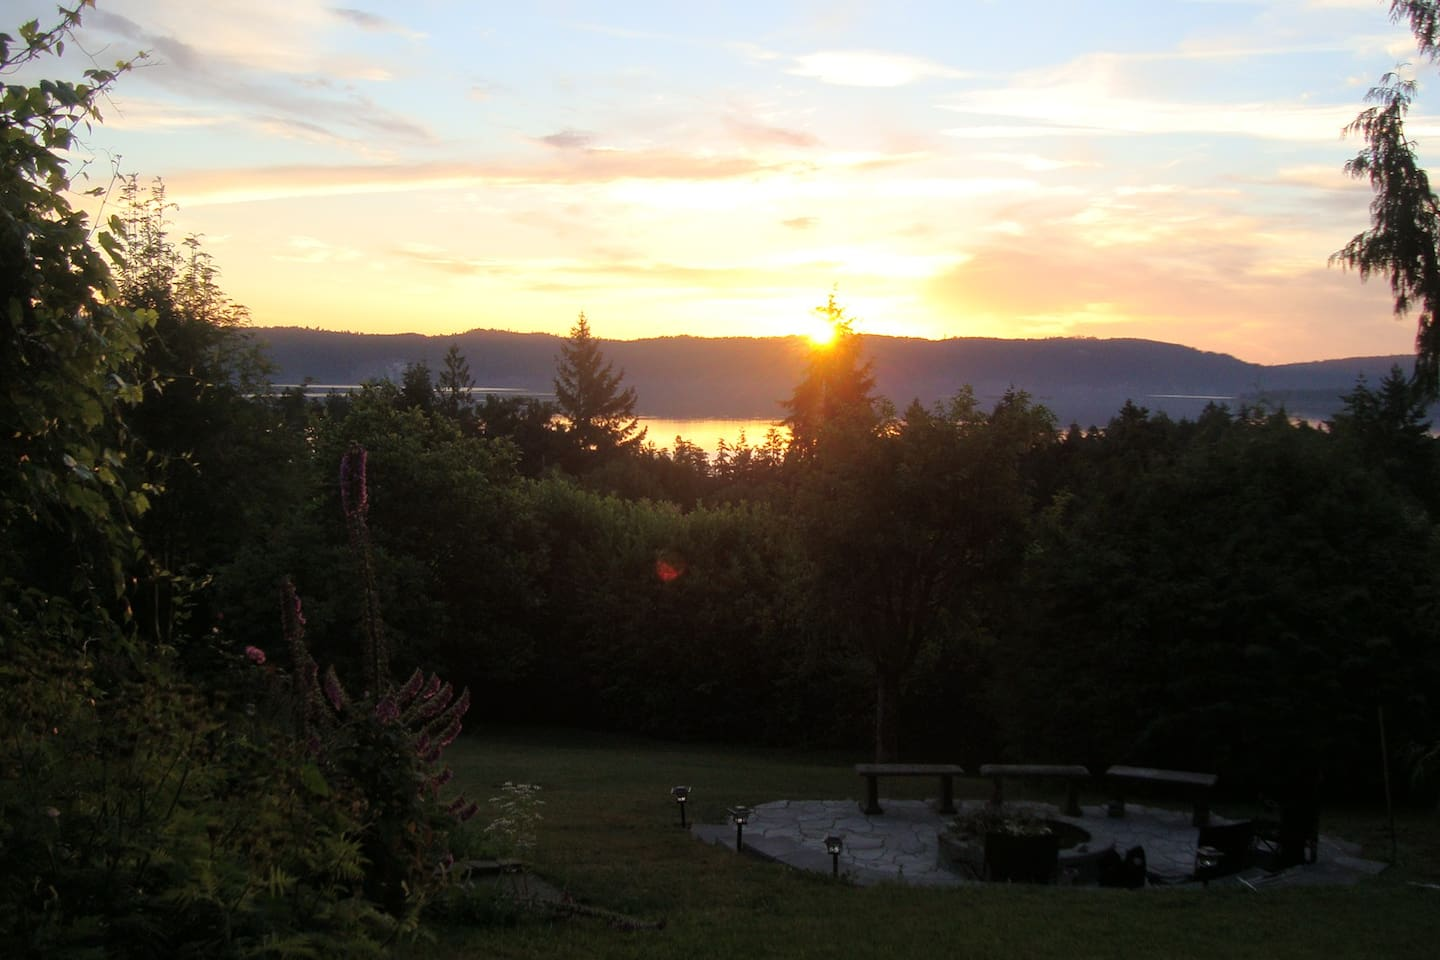 Morning sunrise over Galiano Island from the front deck at Morningside Garden Suite